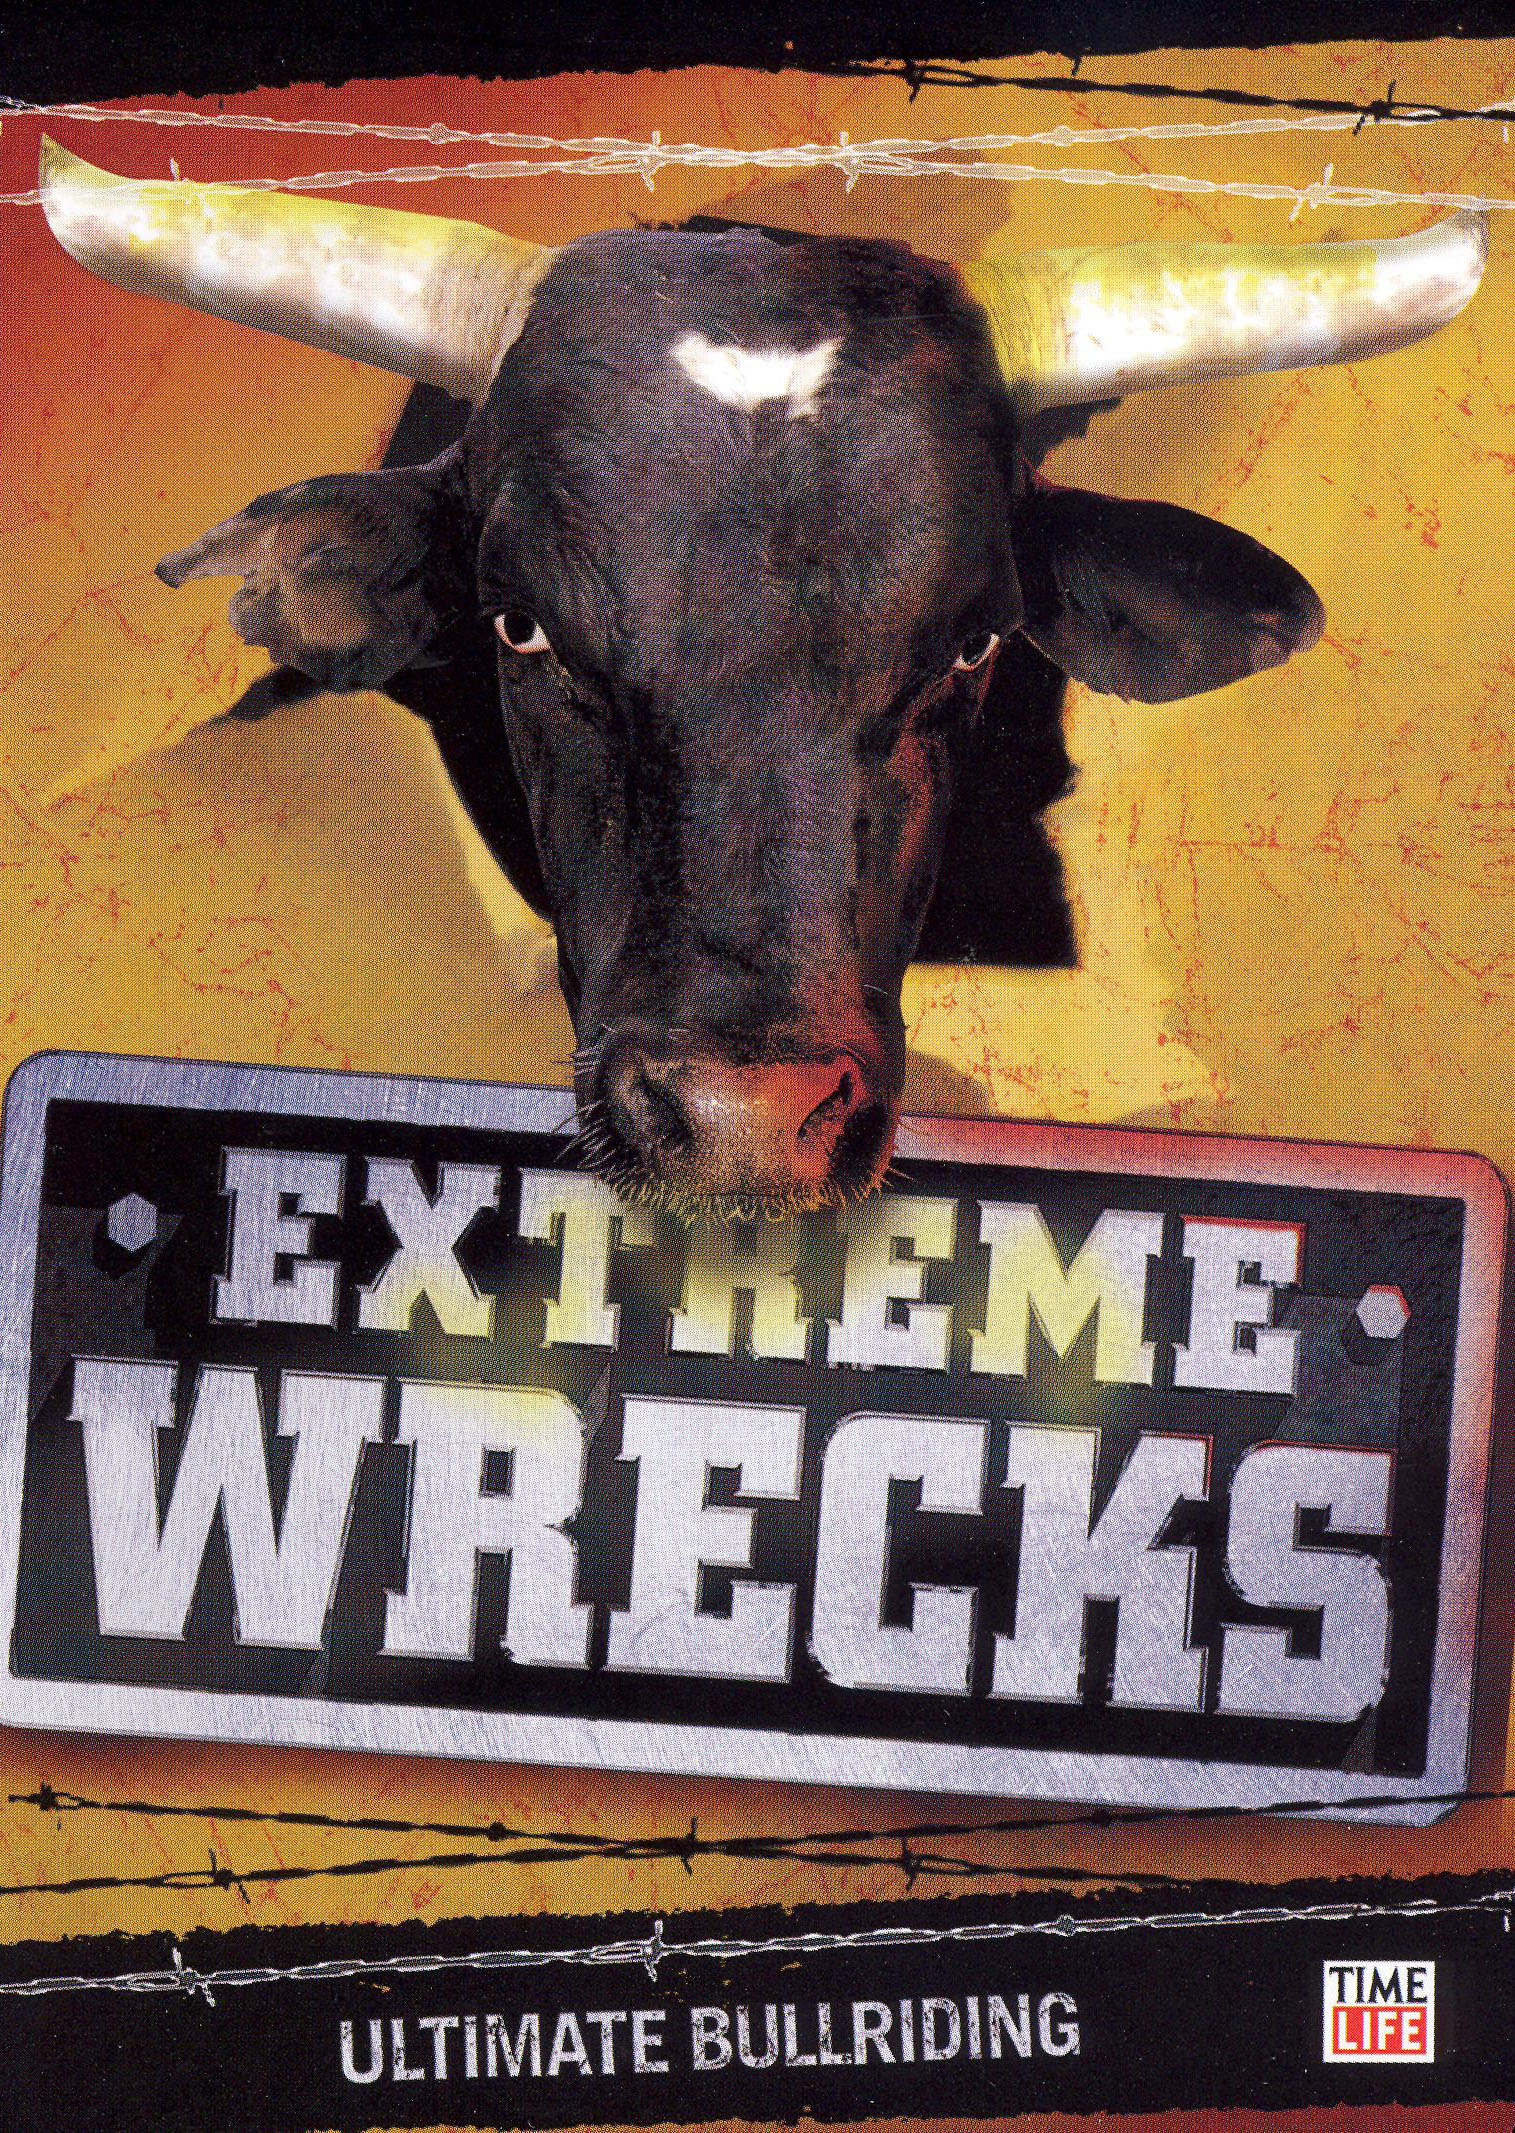 Ultimate Bull Riding: Extreme Wrecks